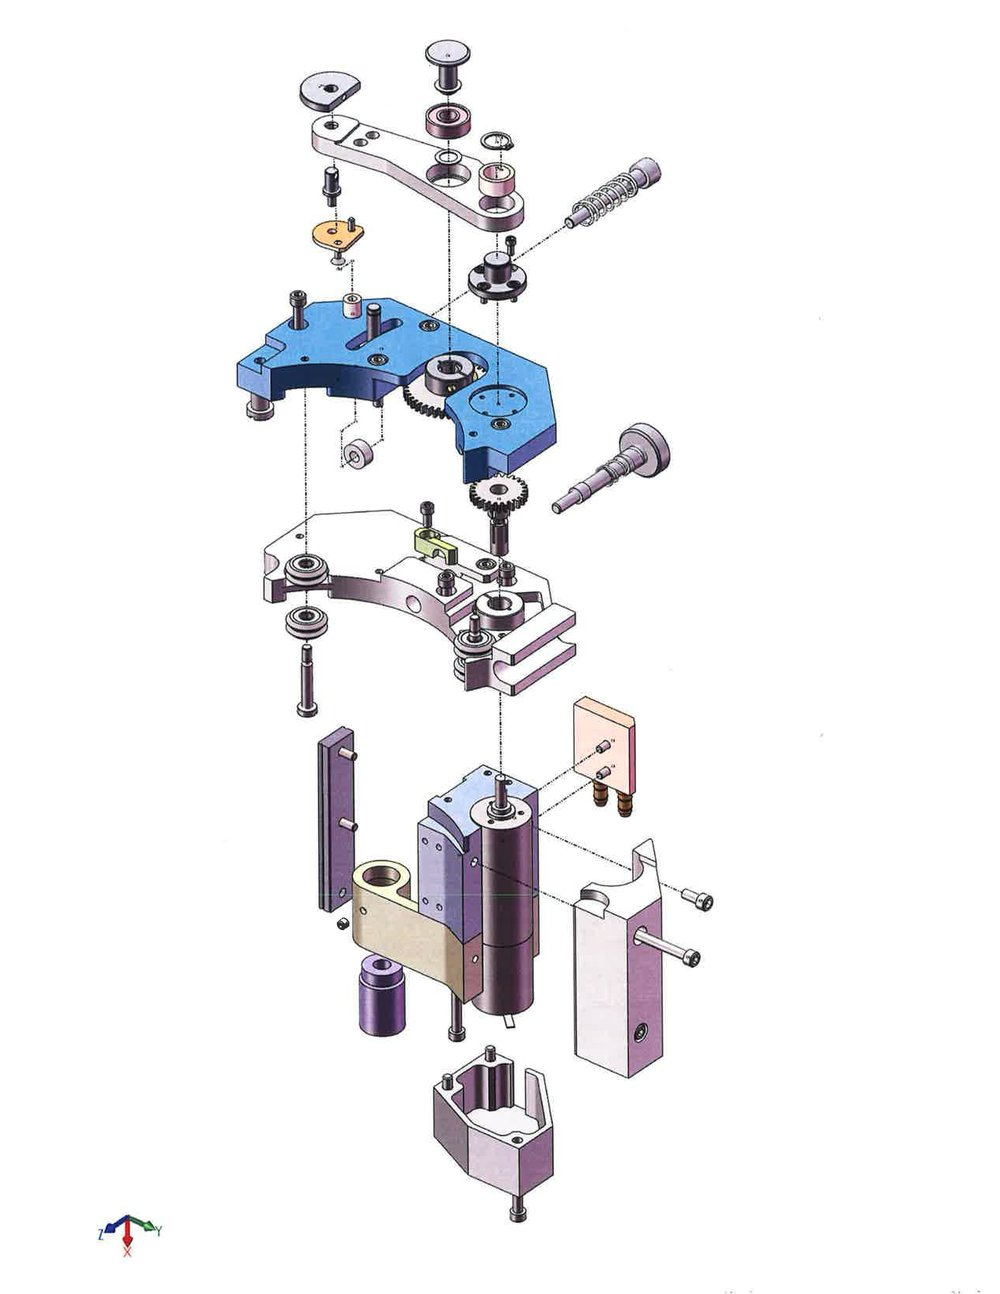 An exploded view of the drive assembly.